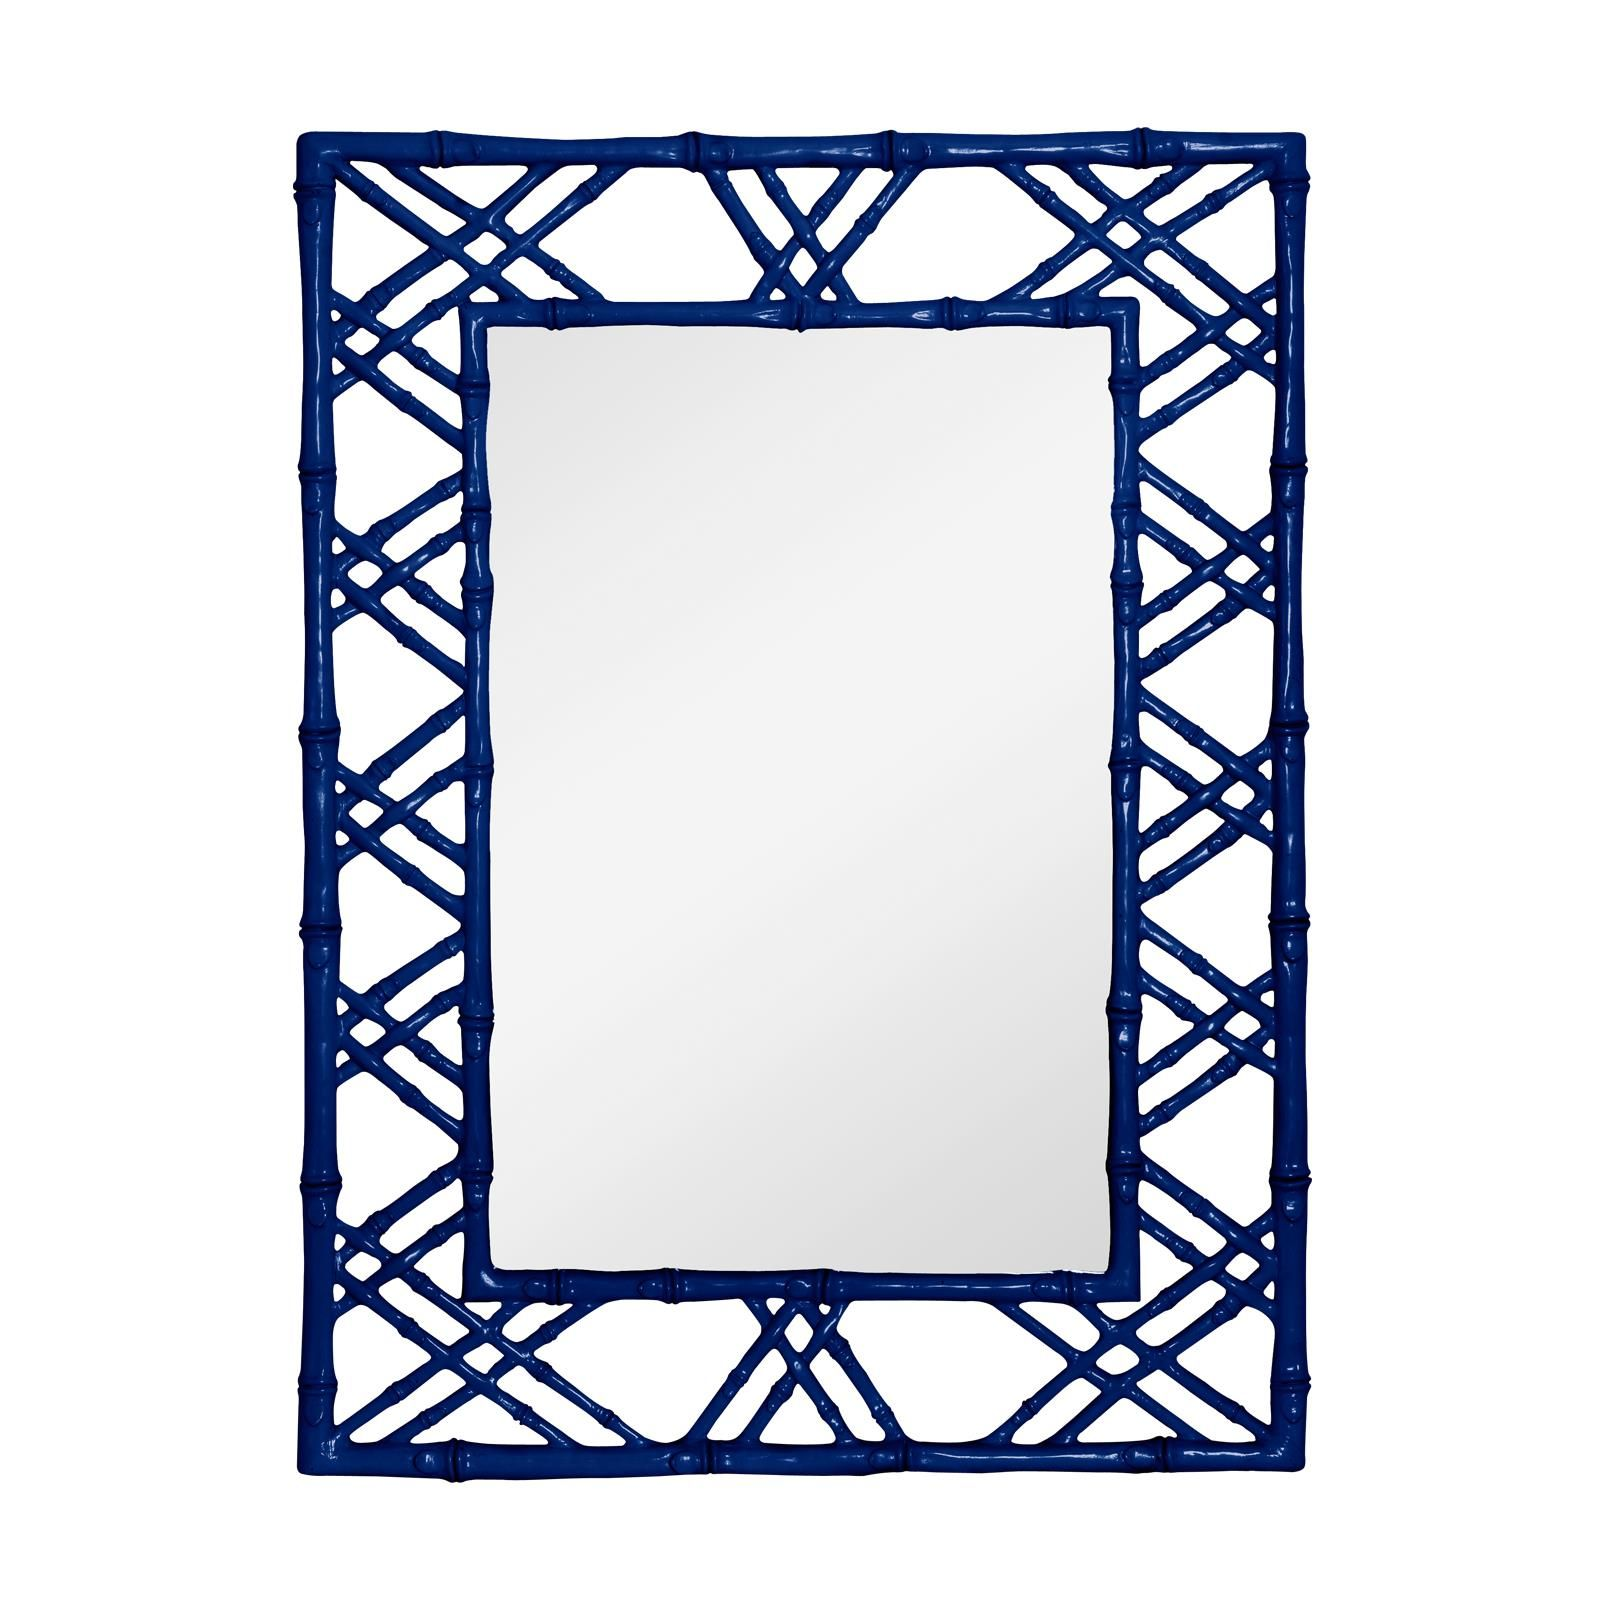 31 W X 40 H 2 D Bungalow 5 Clair Mirror Navy Blue For Wall Above Desk